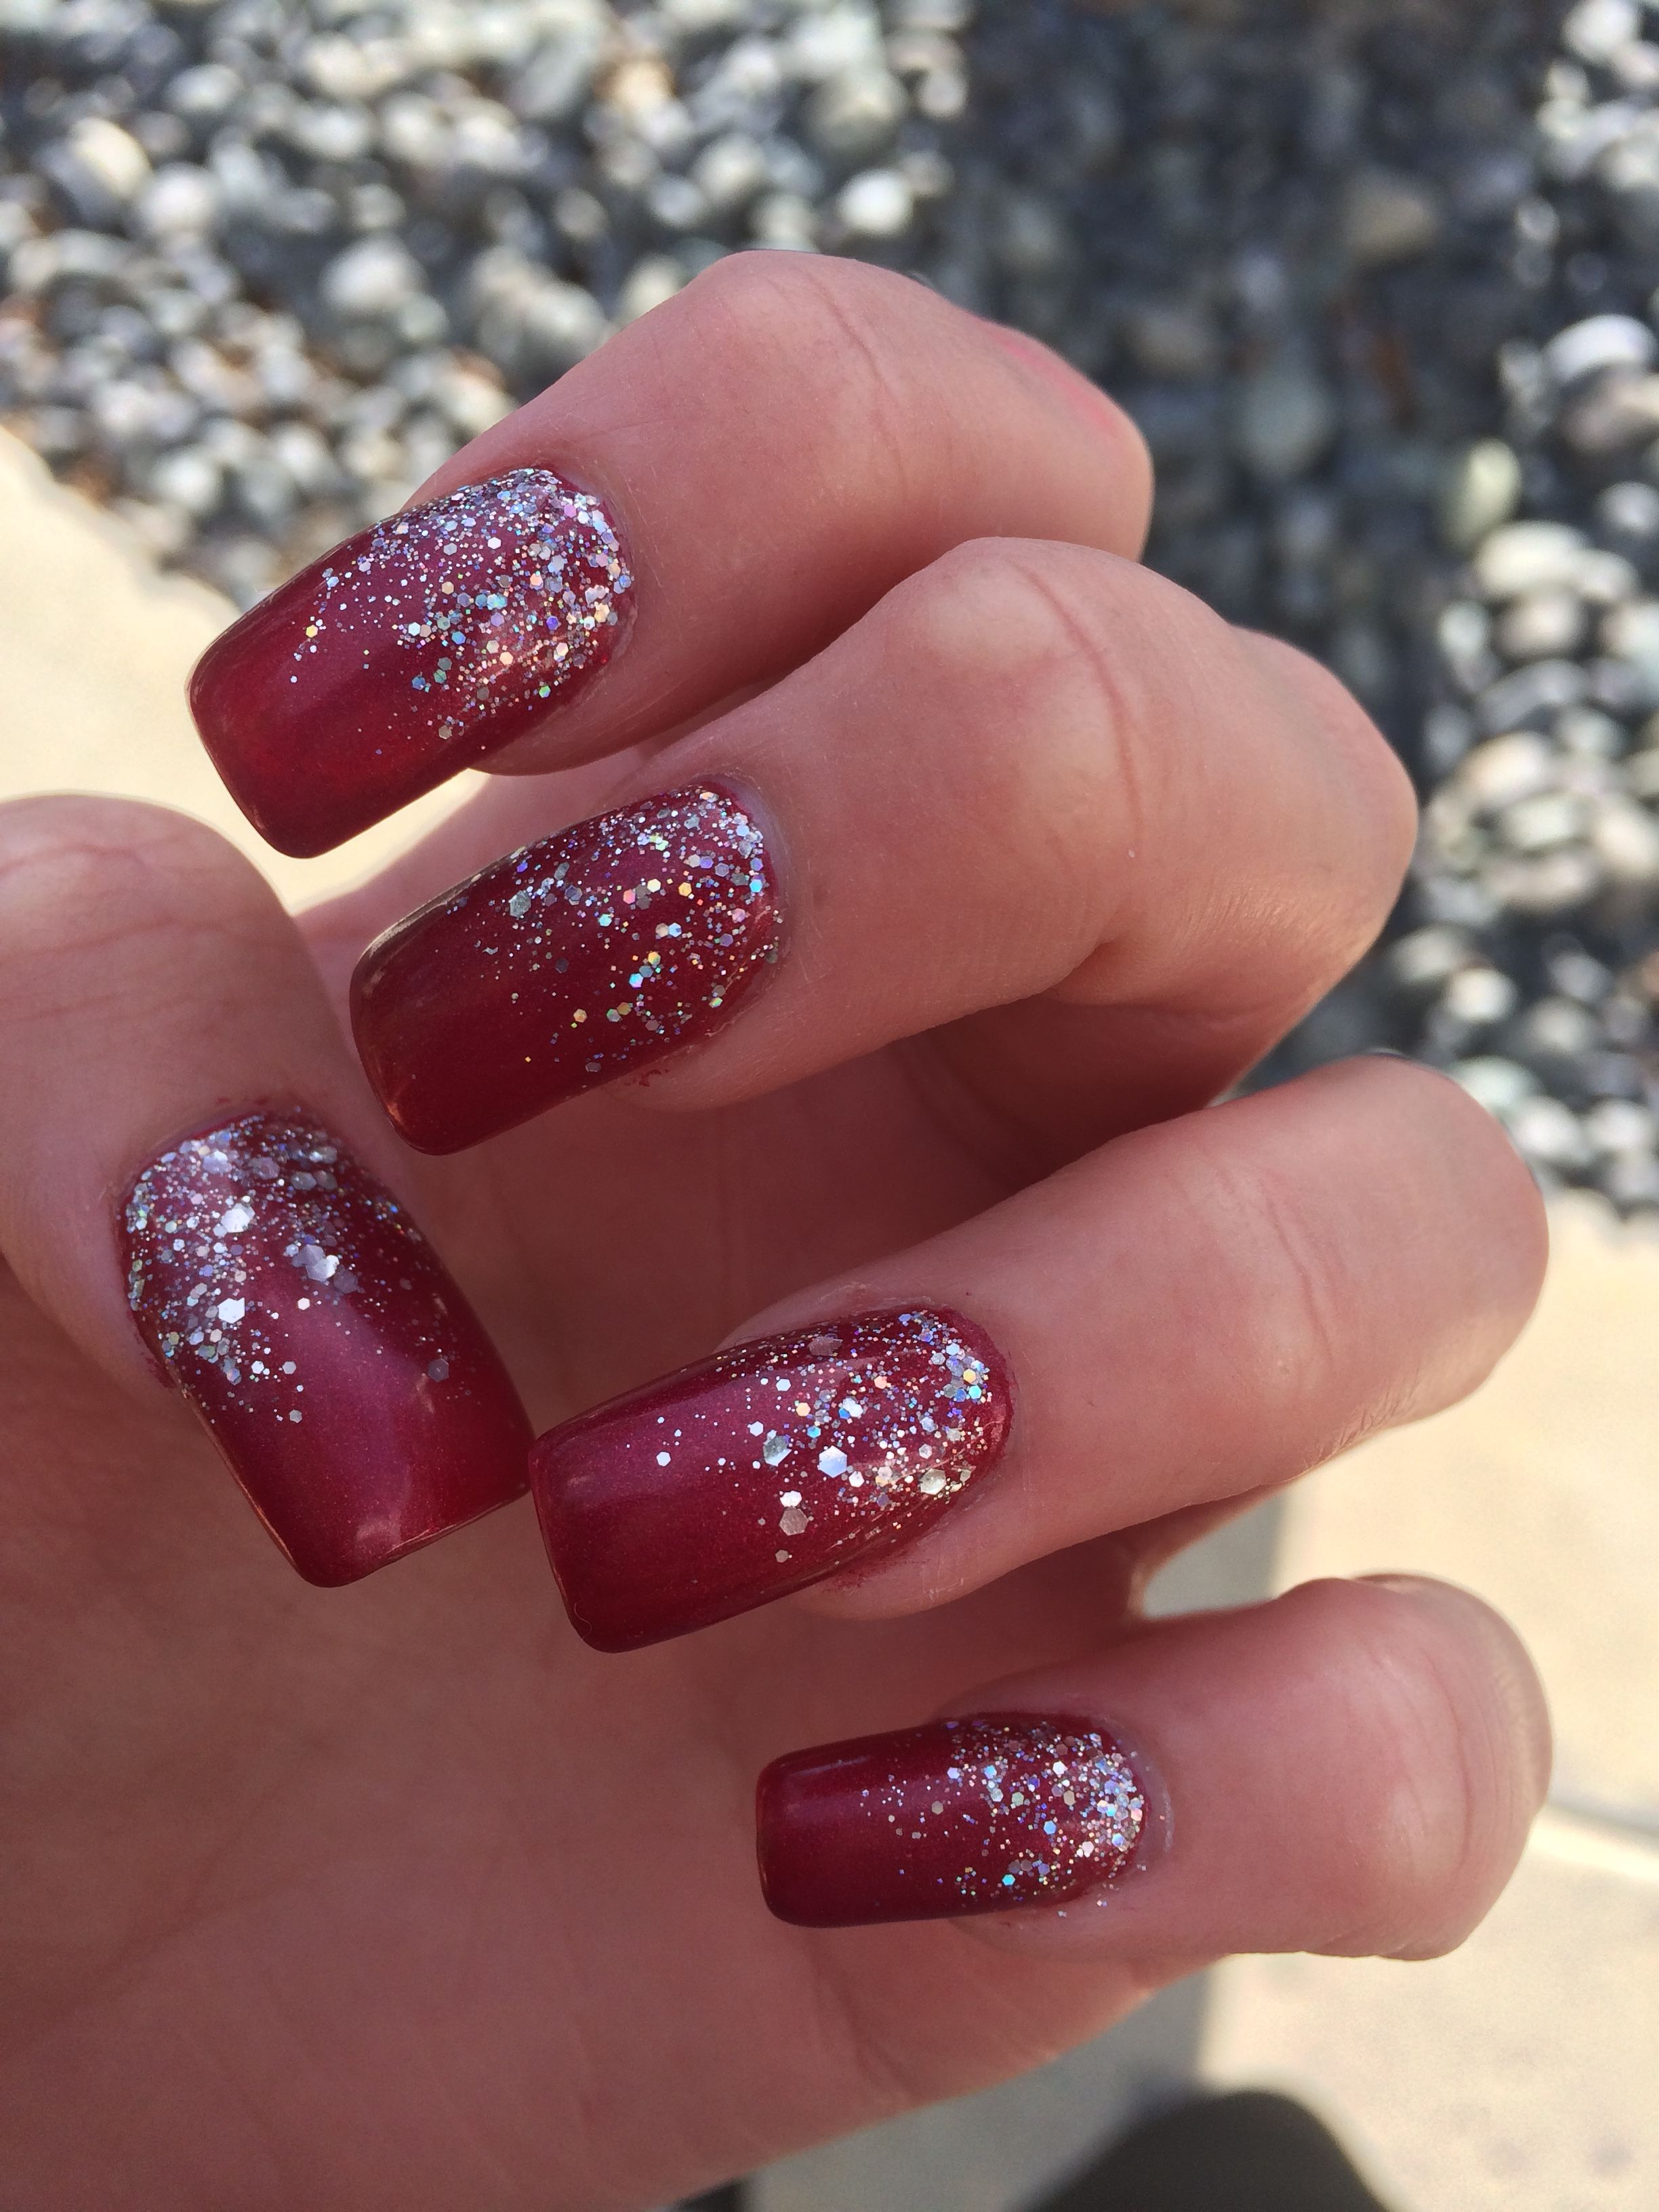 Deep Red Gel Acrylics With Sparkles Nails Acrylic Longnails Darkred Maroon Sparkly Glitter